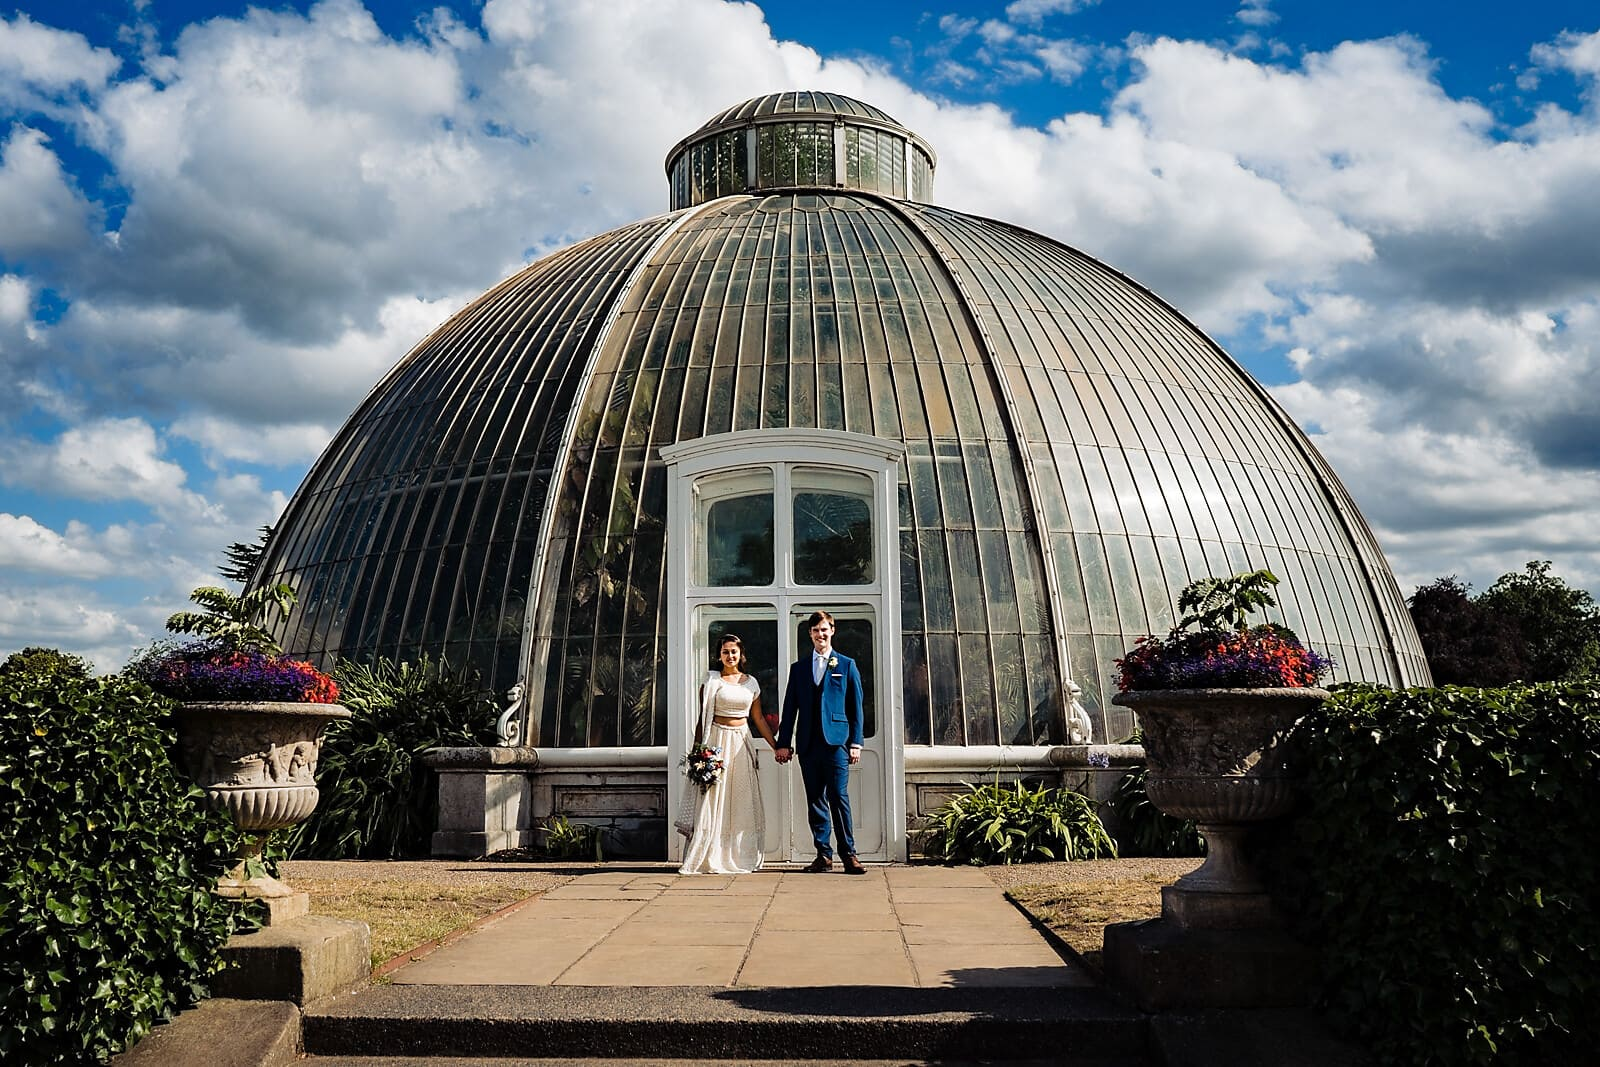 Bride and groom standing in front of the large Palm House at Kew Gardens